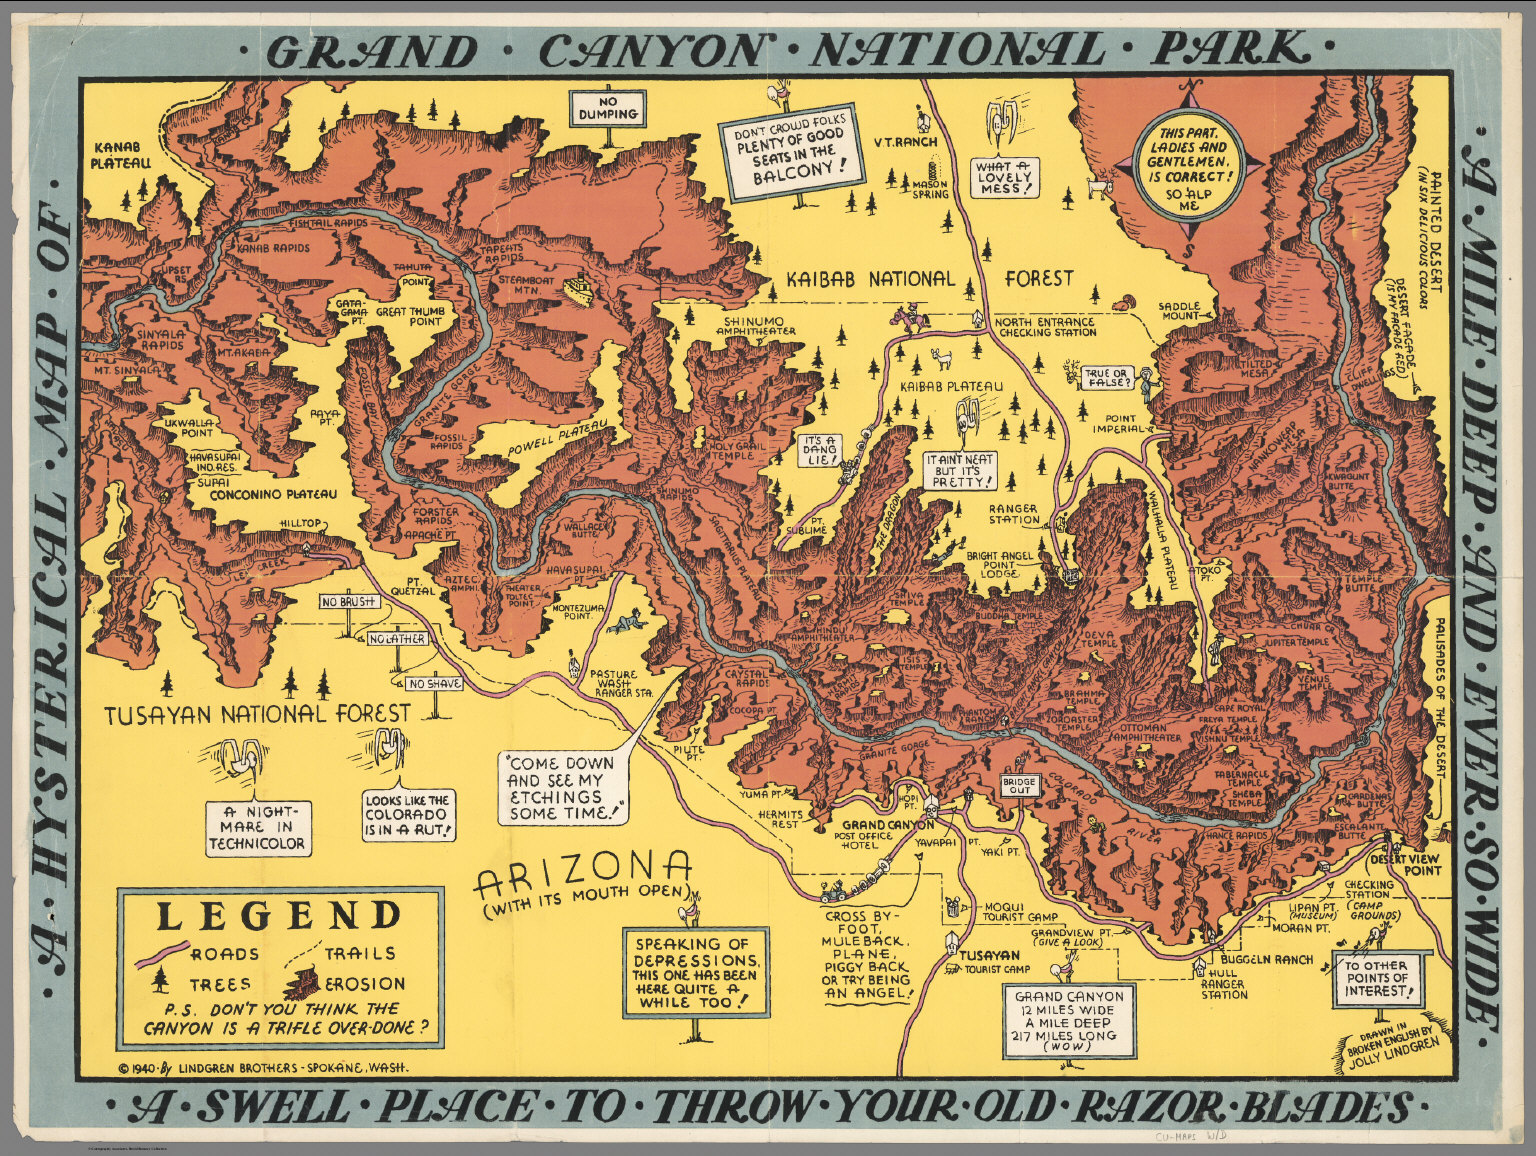 A Hysterical Map of the Grand Canyon National Park David Rumsey